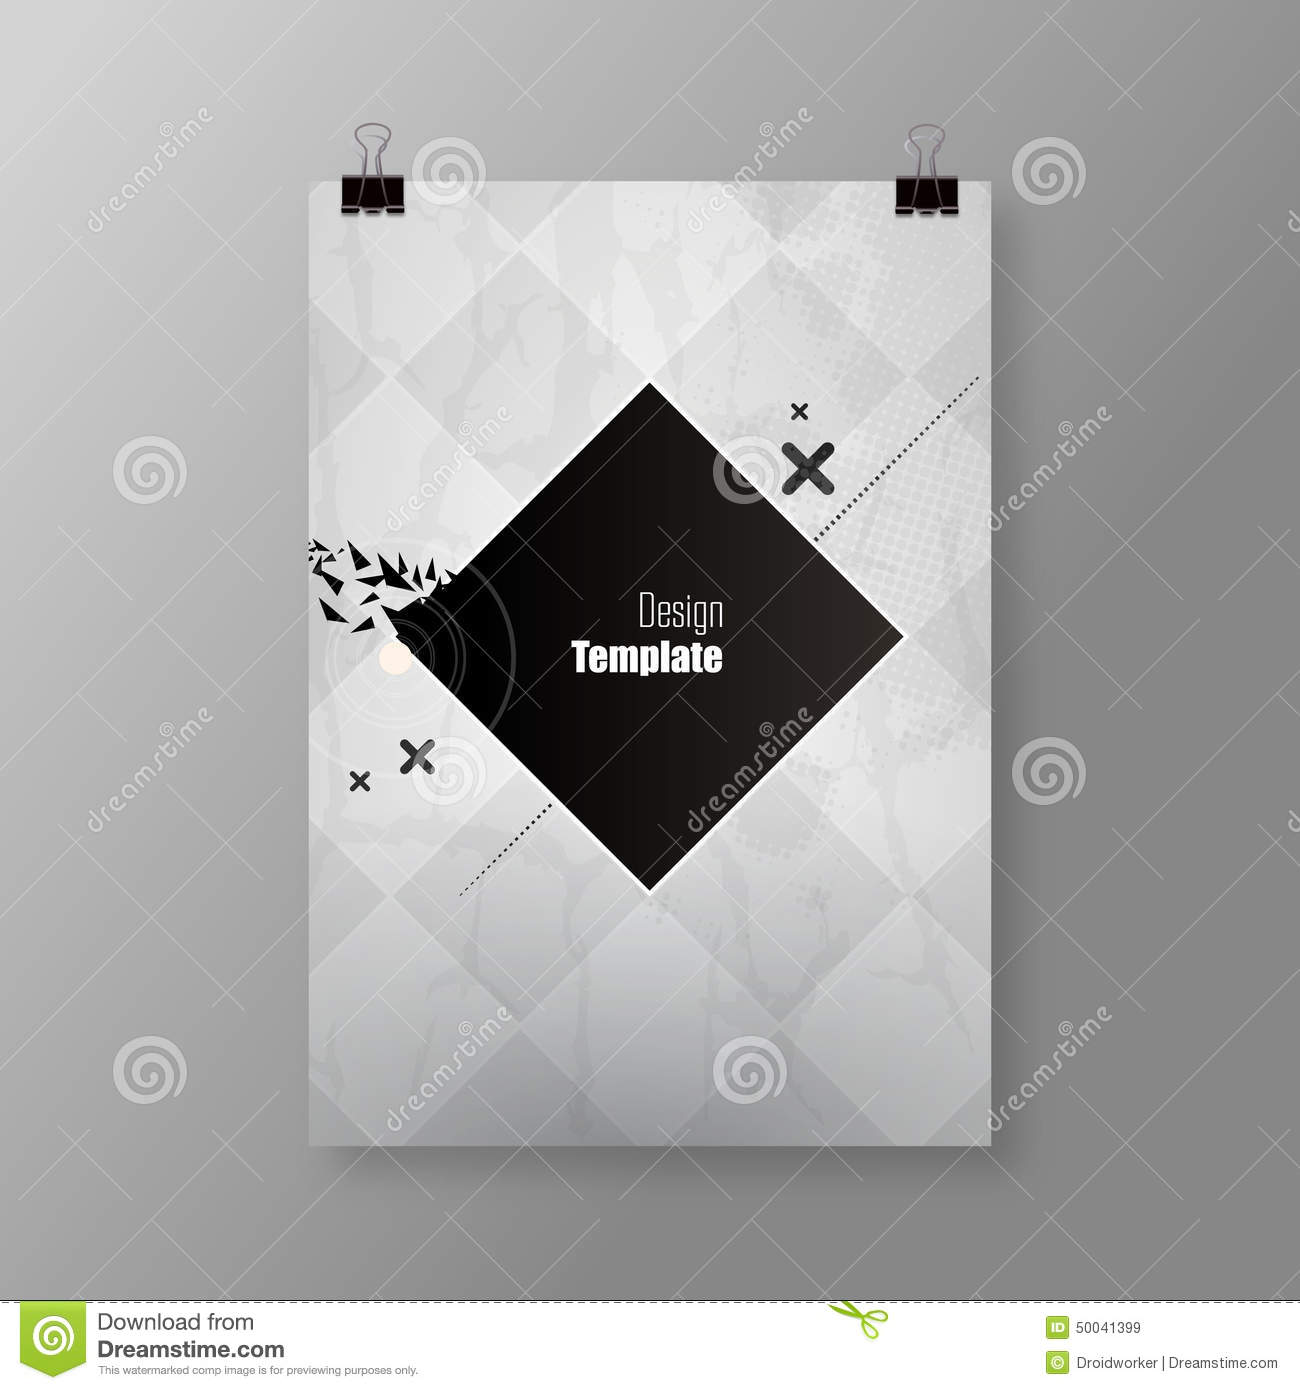 Poster design monochrome - A4 A3 Format Poster Minimal Abstract Background With Your Text Paper Clips And Shadow